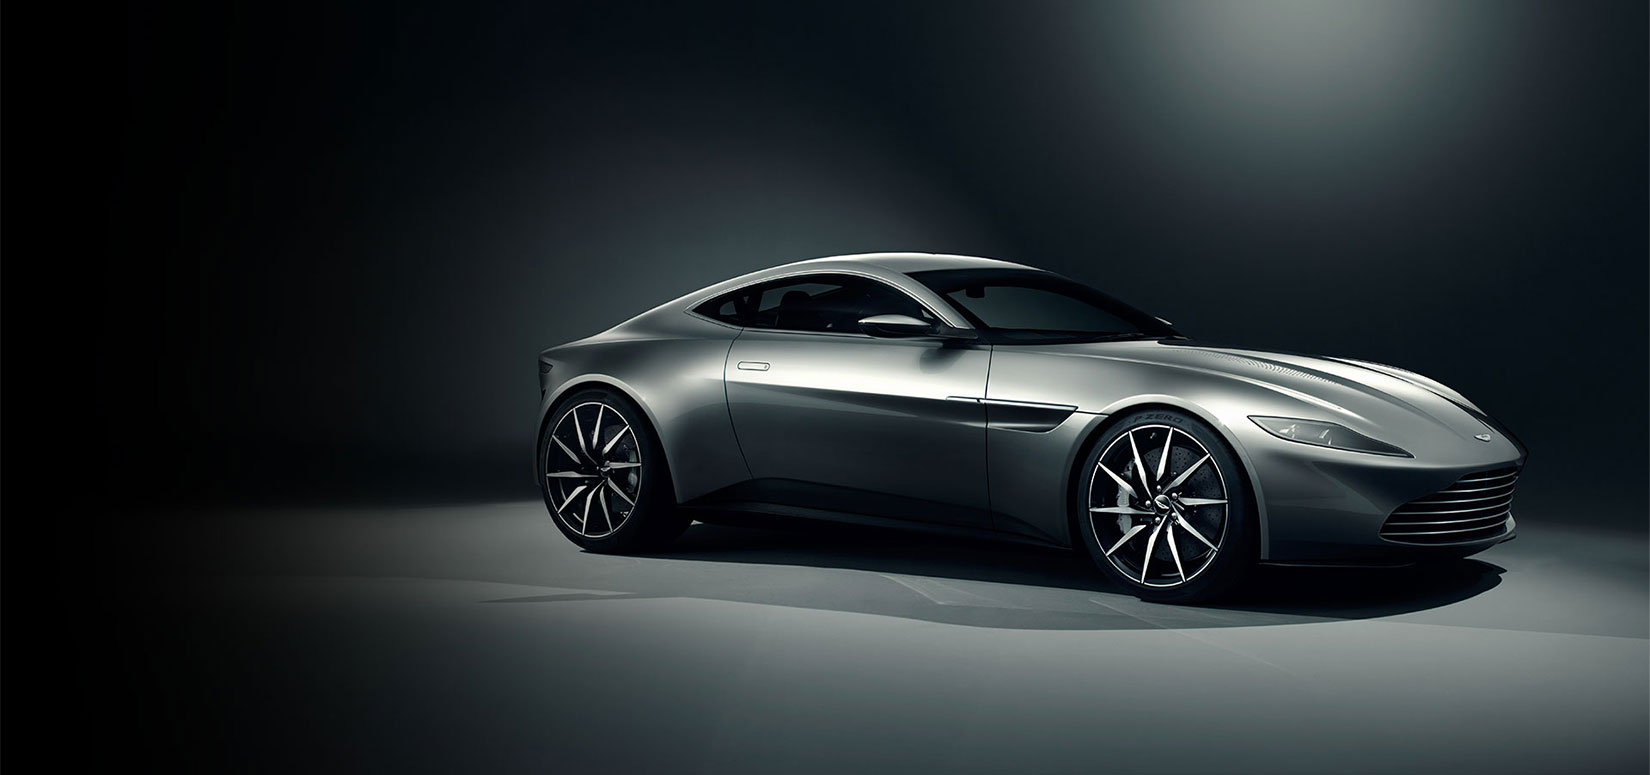 1650x775 > Aston Martin Wallpapers